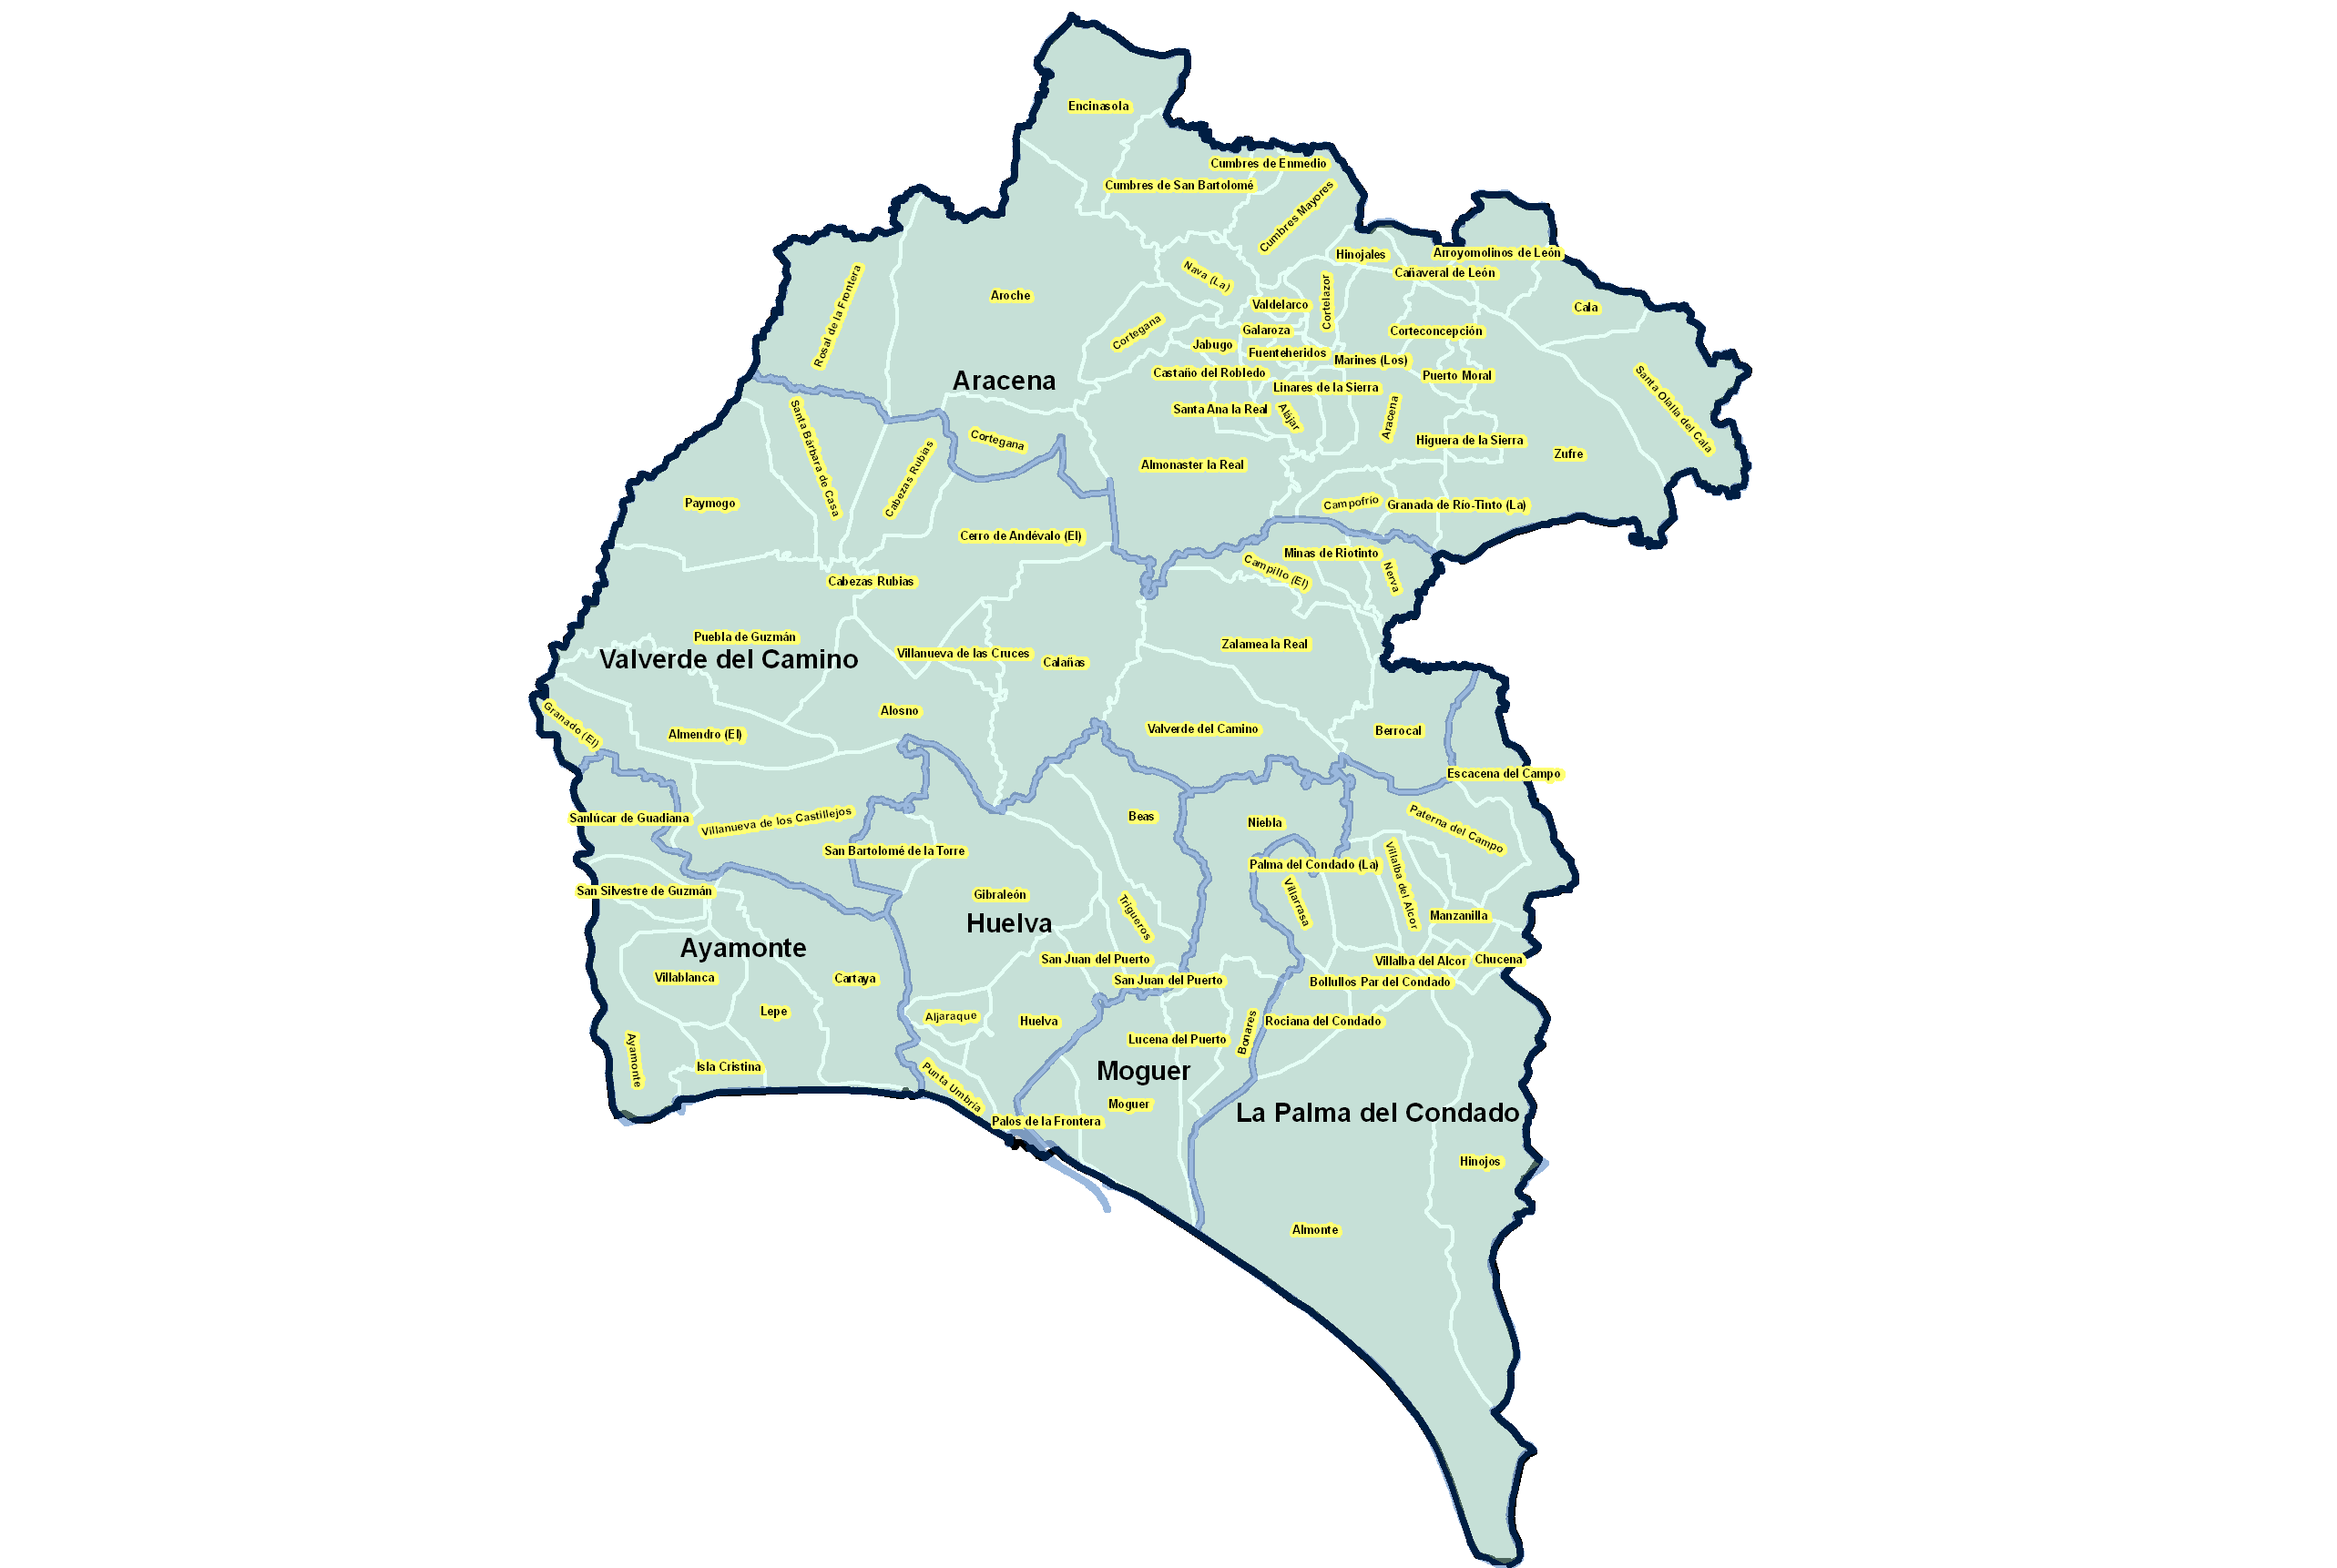 Municipal Districts and Judicial Parties of the Province of Huelva 2008